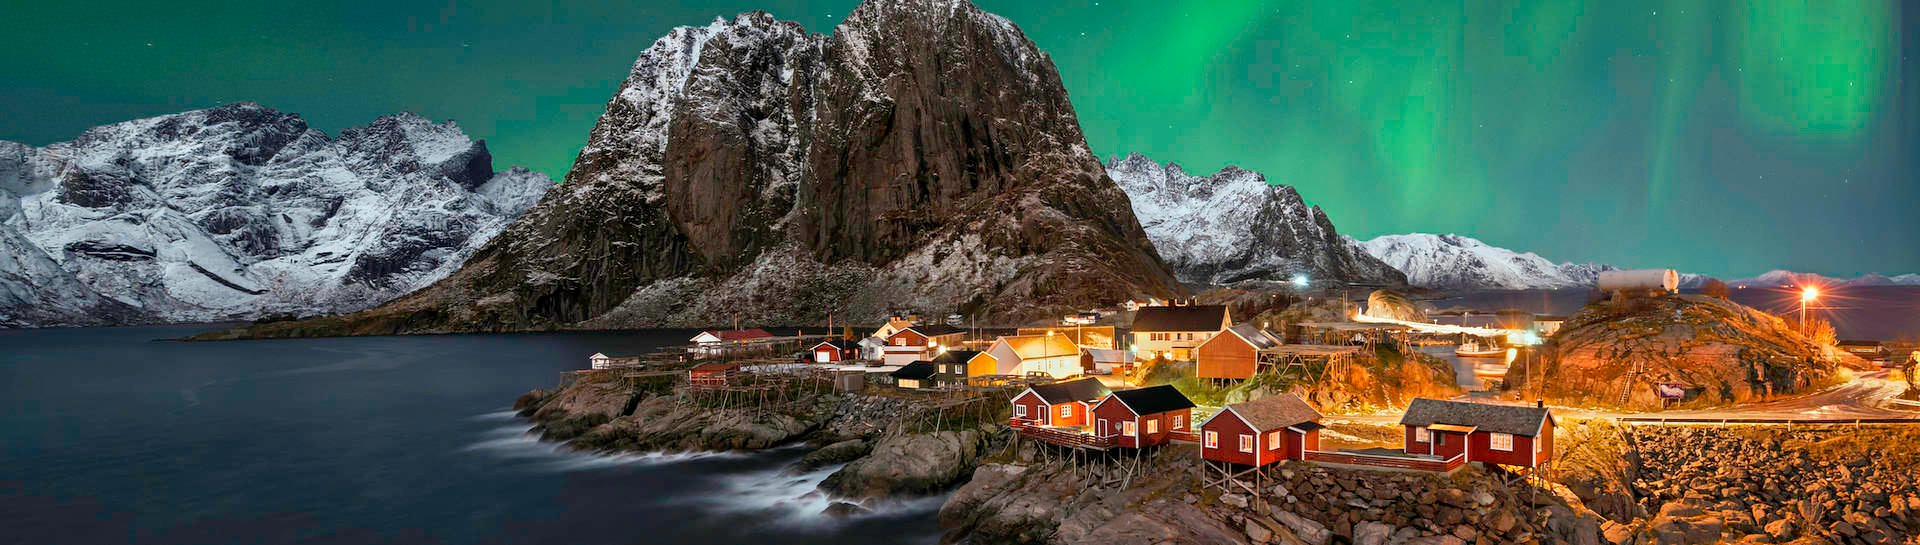 The Lofoten Islands is one of the best destinations in Norway to witness the fantastic natural phenomenon of Aurora Borealis